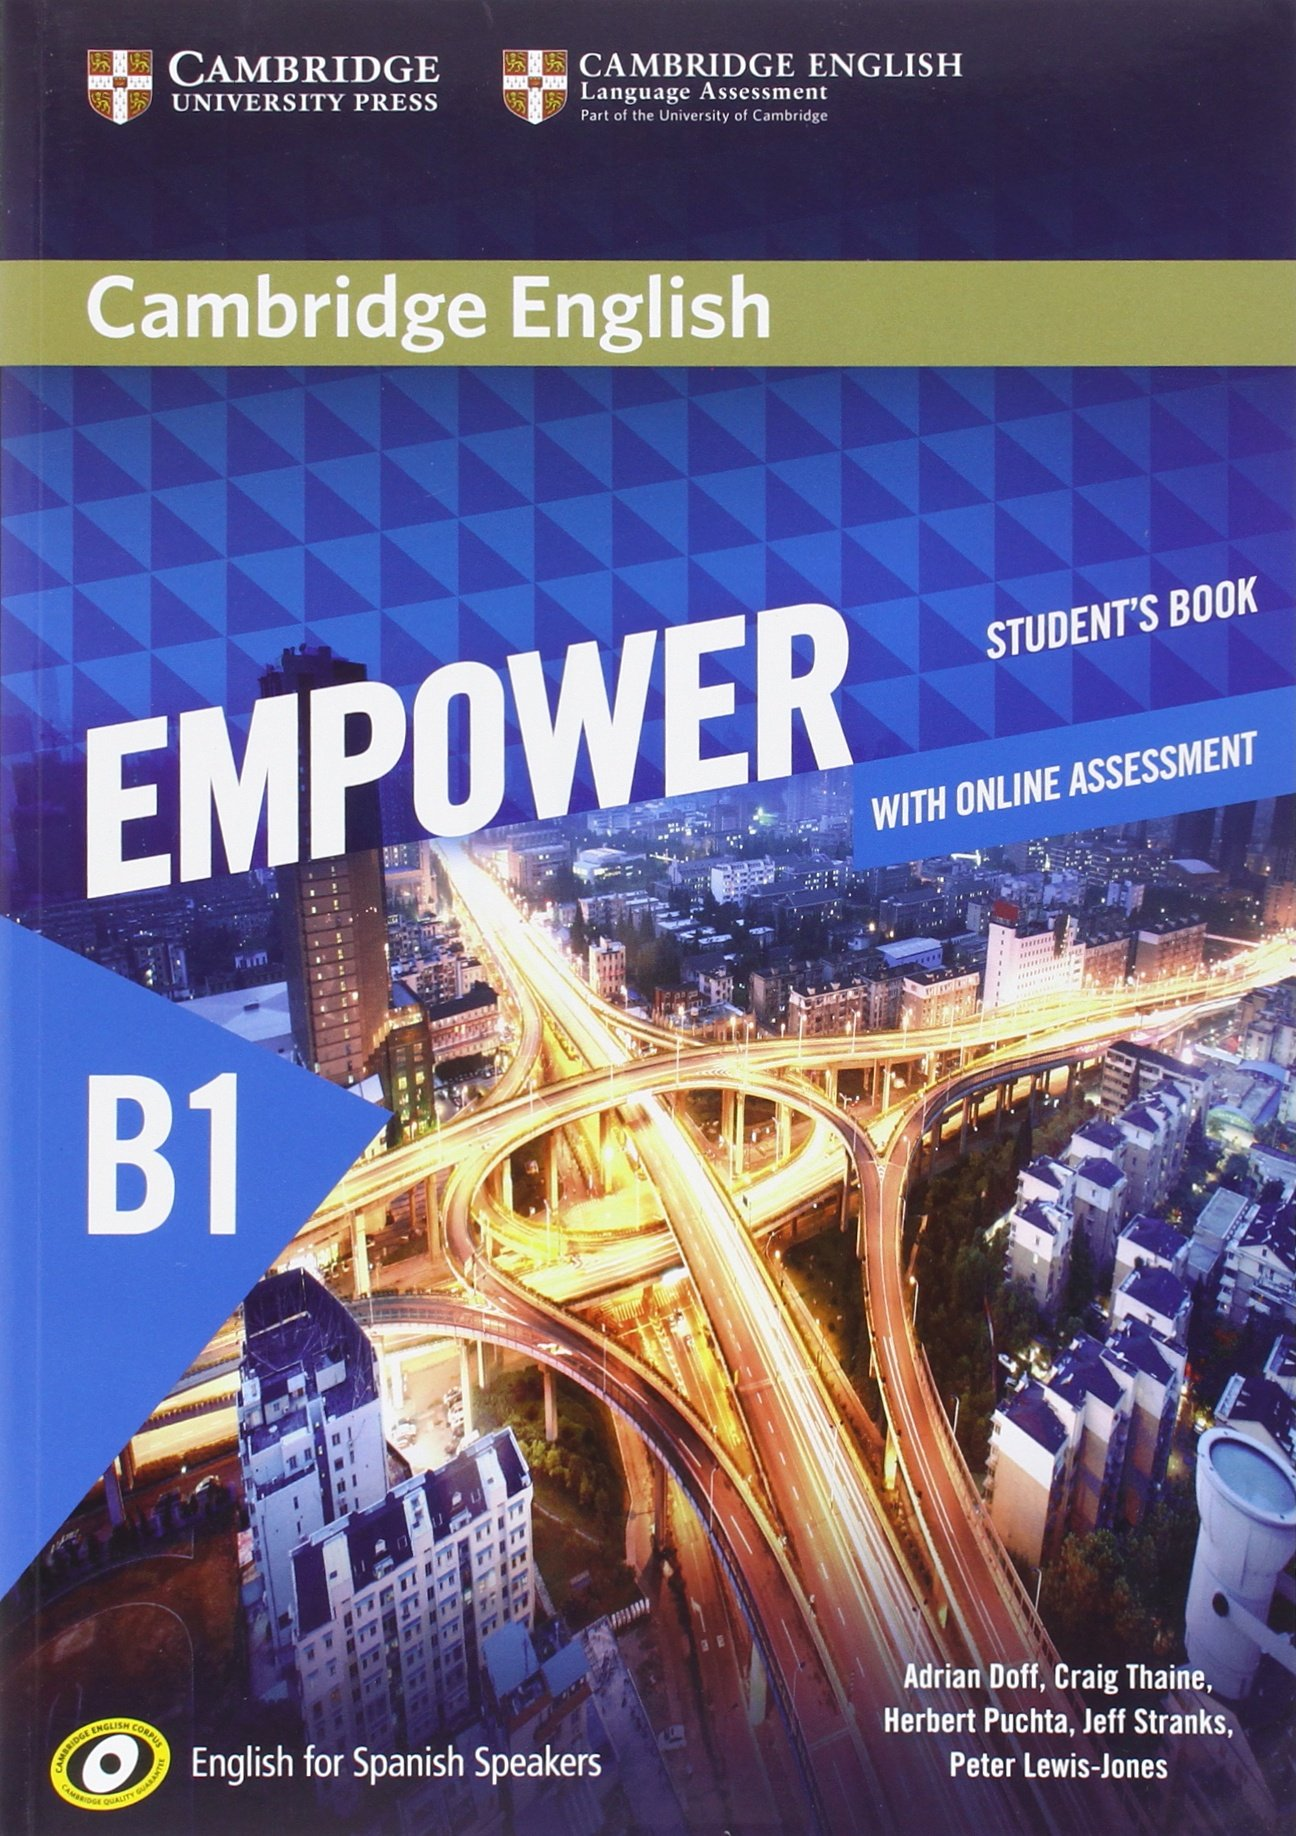 Cambridge English Empower for Spanish Speakers B1 Student's Book with Online Assessment and Practice (Inglés) Tapa blanda – 10 jun 2016 Adrian Doff Craig Thaine Herbert Puchta Jeff Stranks